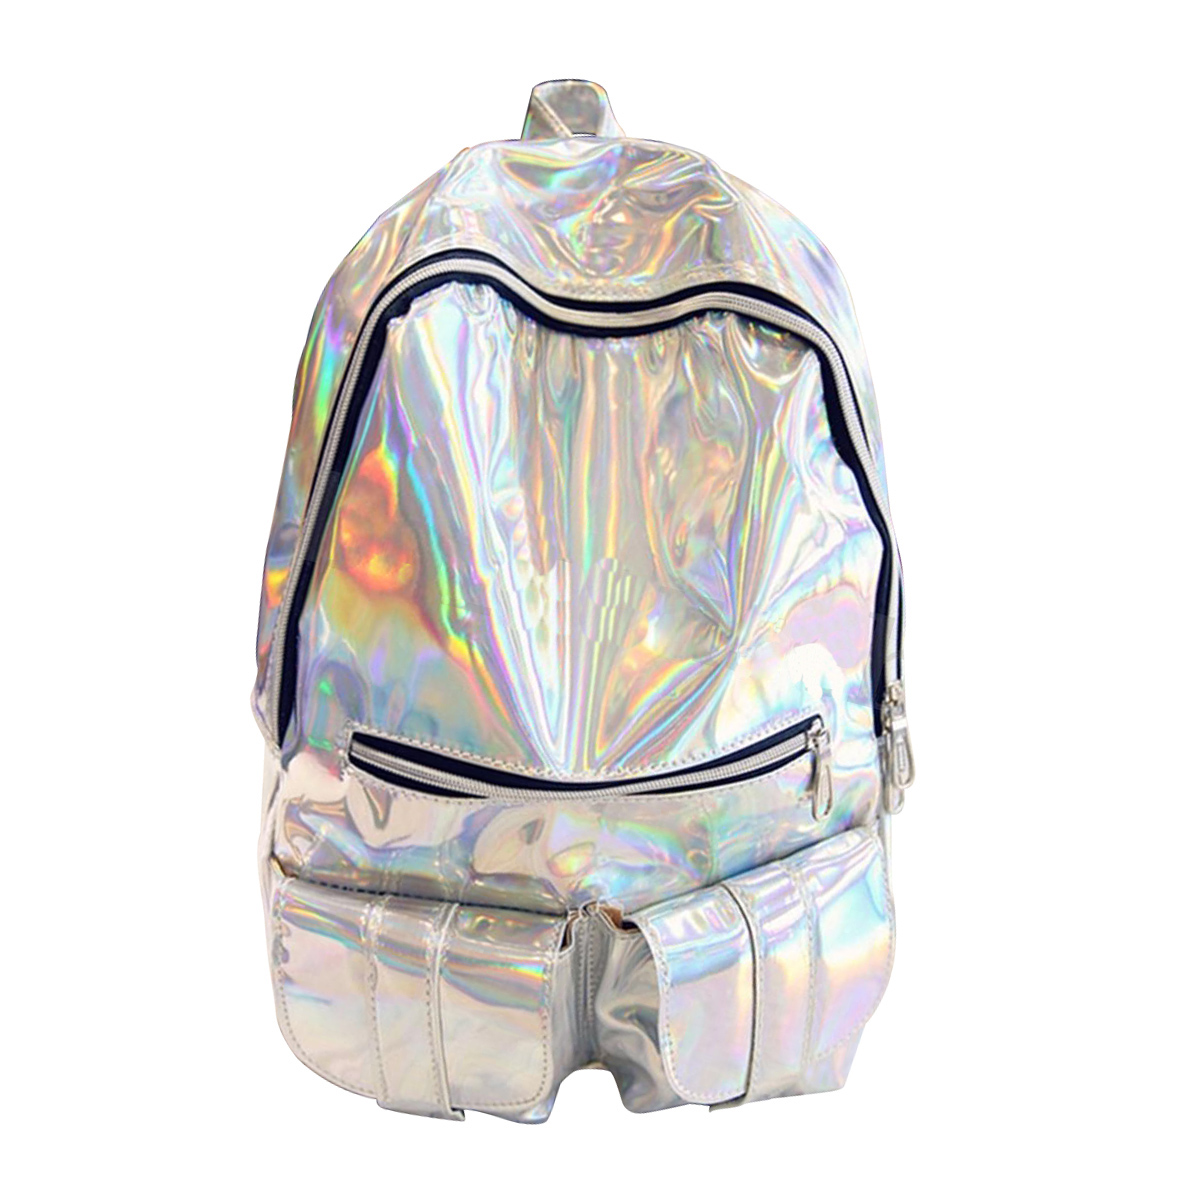 HOLOGRAPHIC Gammaray Hologram backpack Women Silver Hologram Laser Backpack men's Bag leather Holographic Backpack personal epistemology as predictor of attitudes toward ict usage